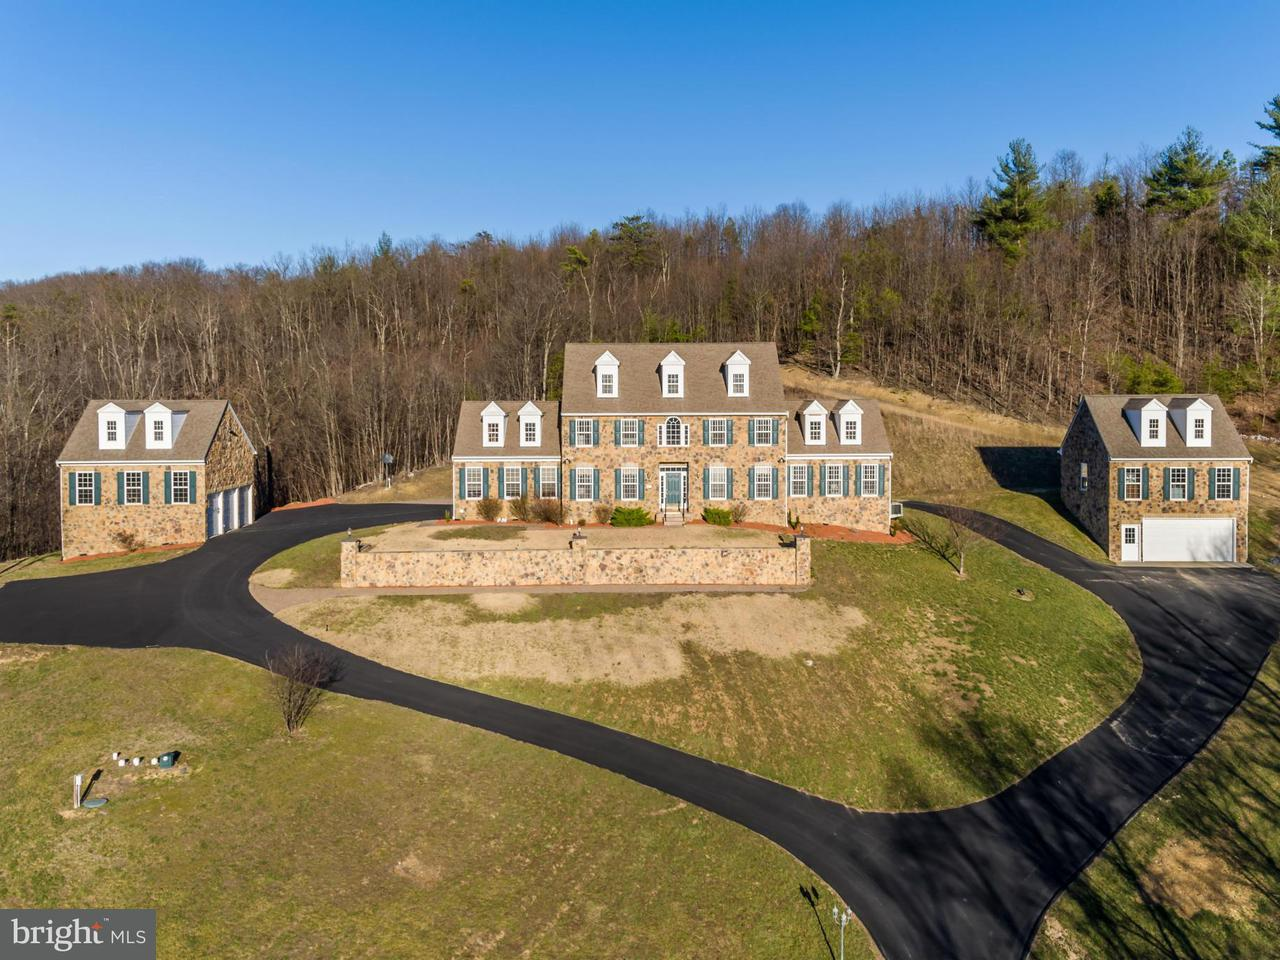 Single Family Home for Sale at 491 Star Tannery Road 491 Star Tannery Road Star Tannery, Virginia 22654 United States